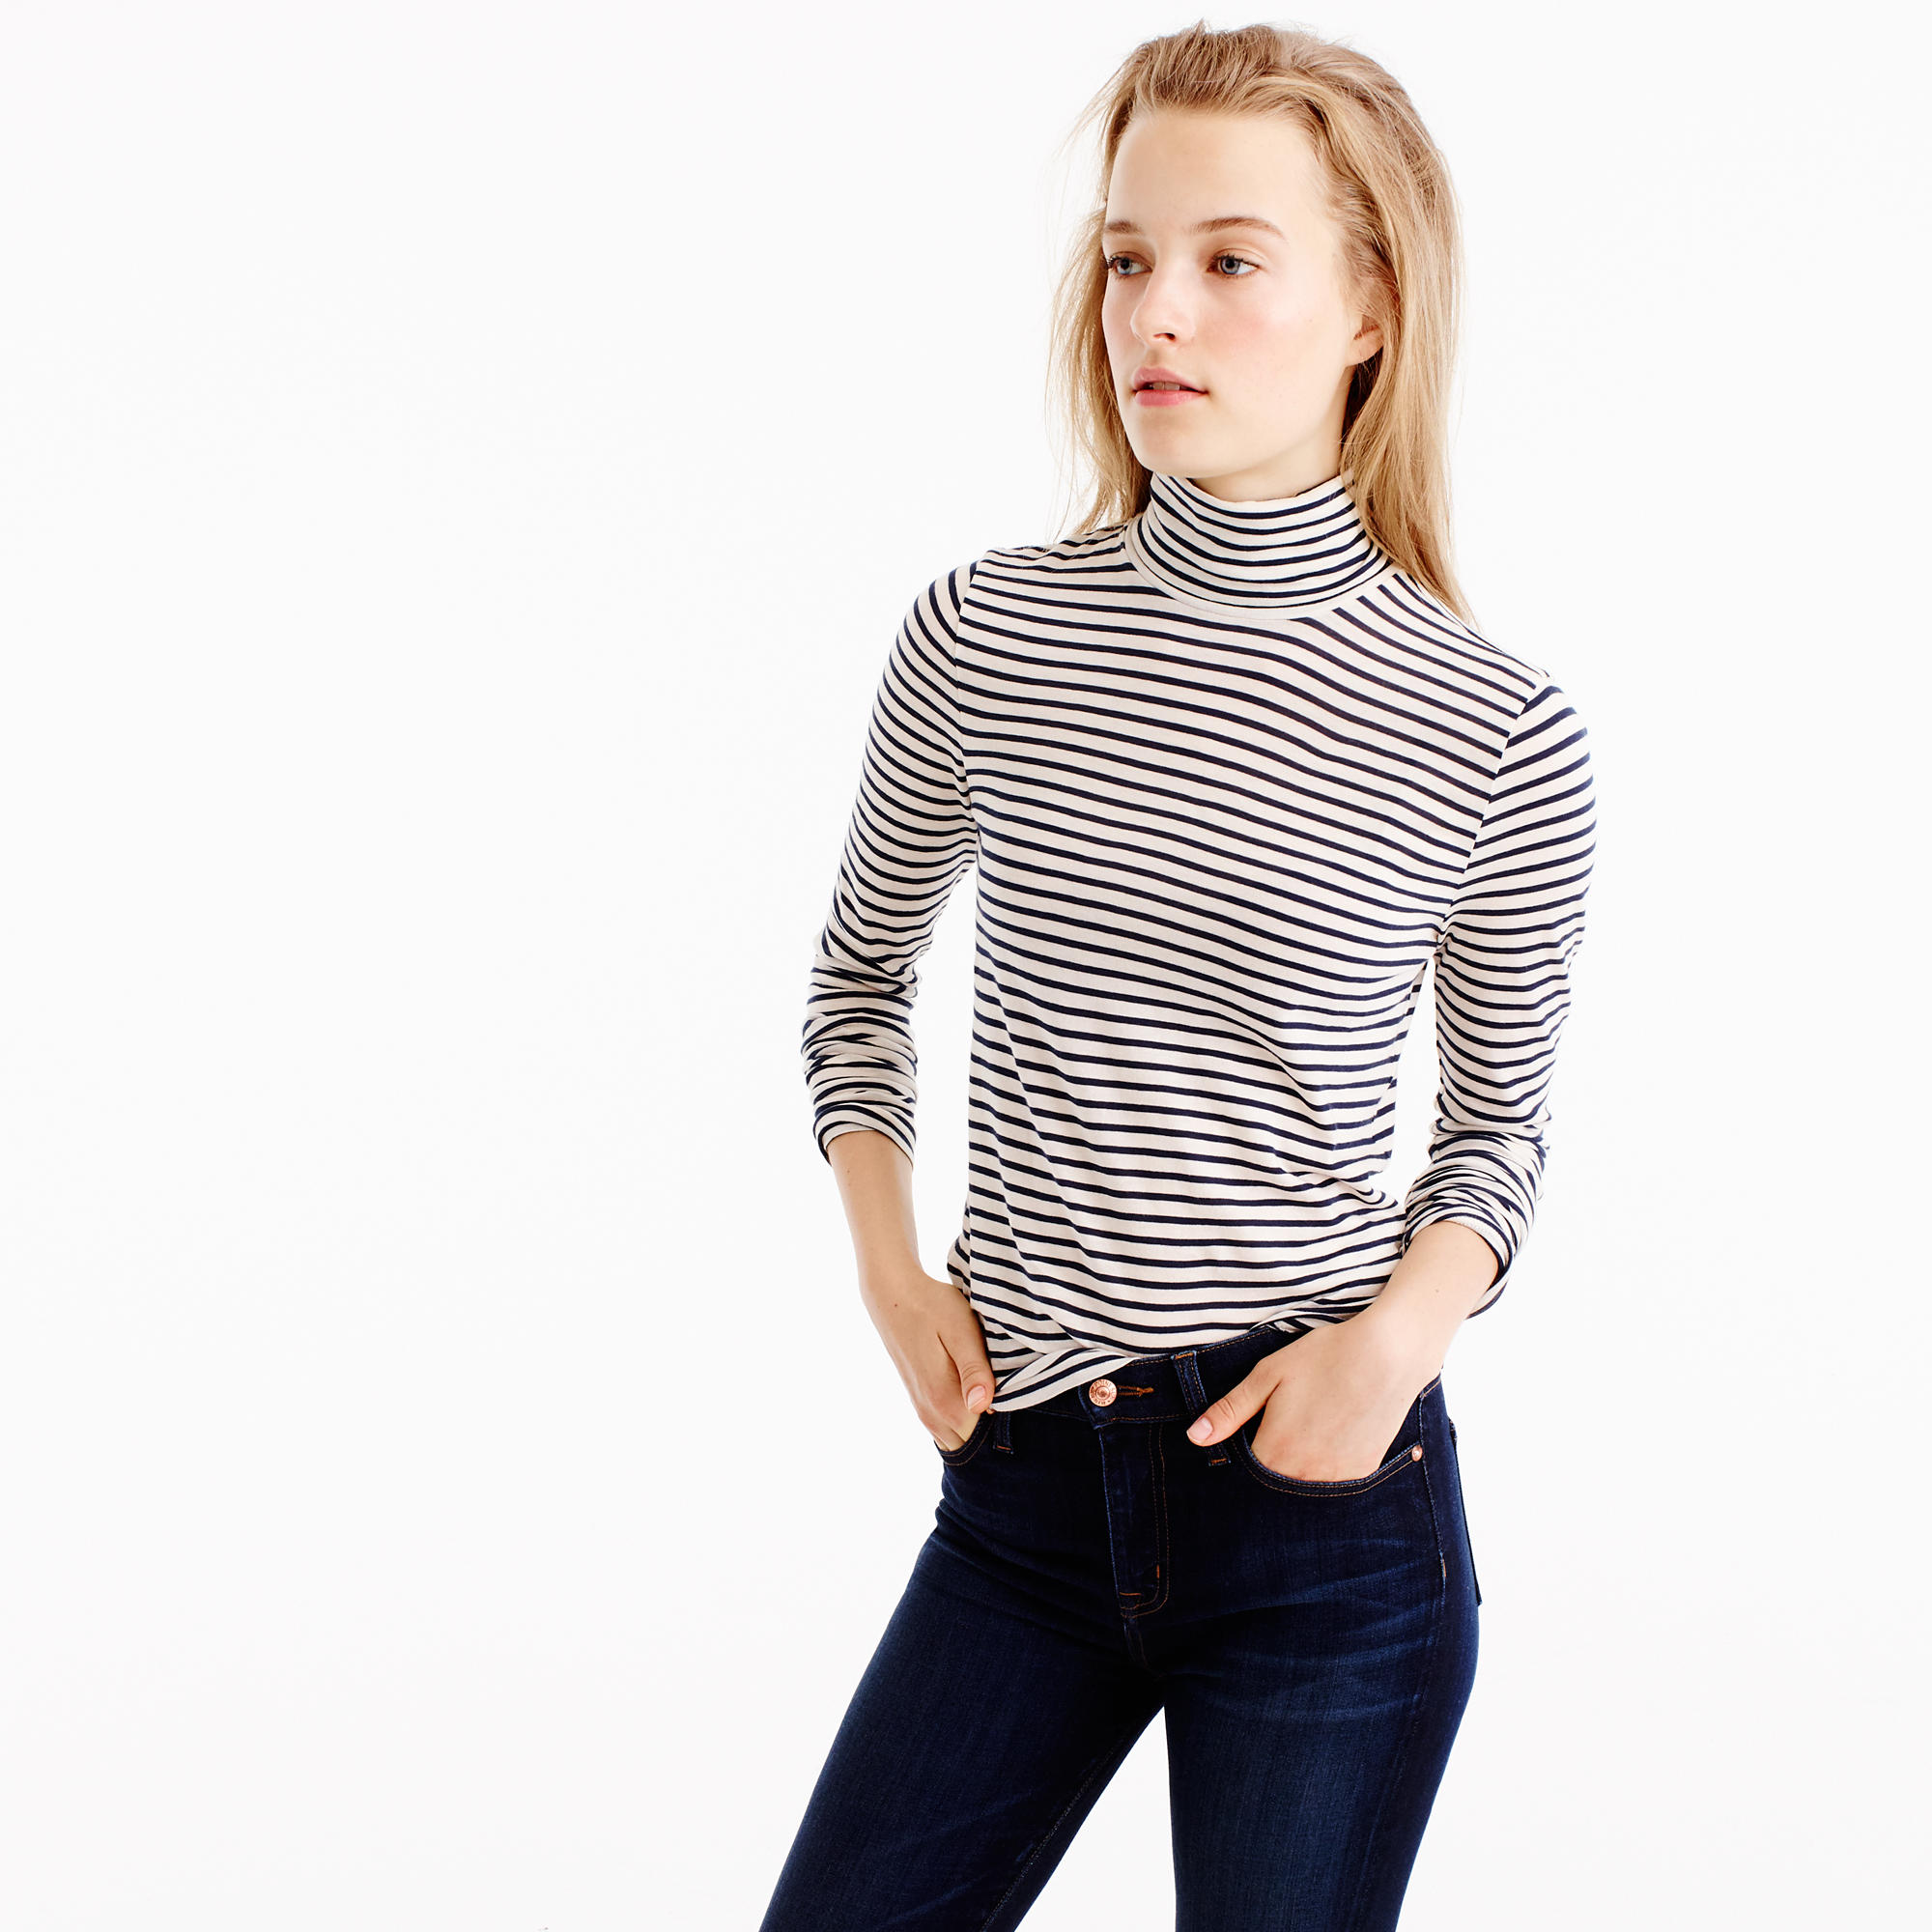 2e4c345d05 J.Crew Tissue Turtleneck T-shirt in Stripe $39.50. This striped staple is  the turtleneck of our dreams. It looks great on its own or under a smock  dress, ...